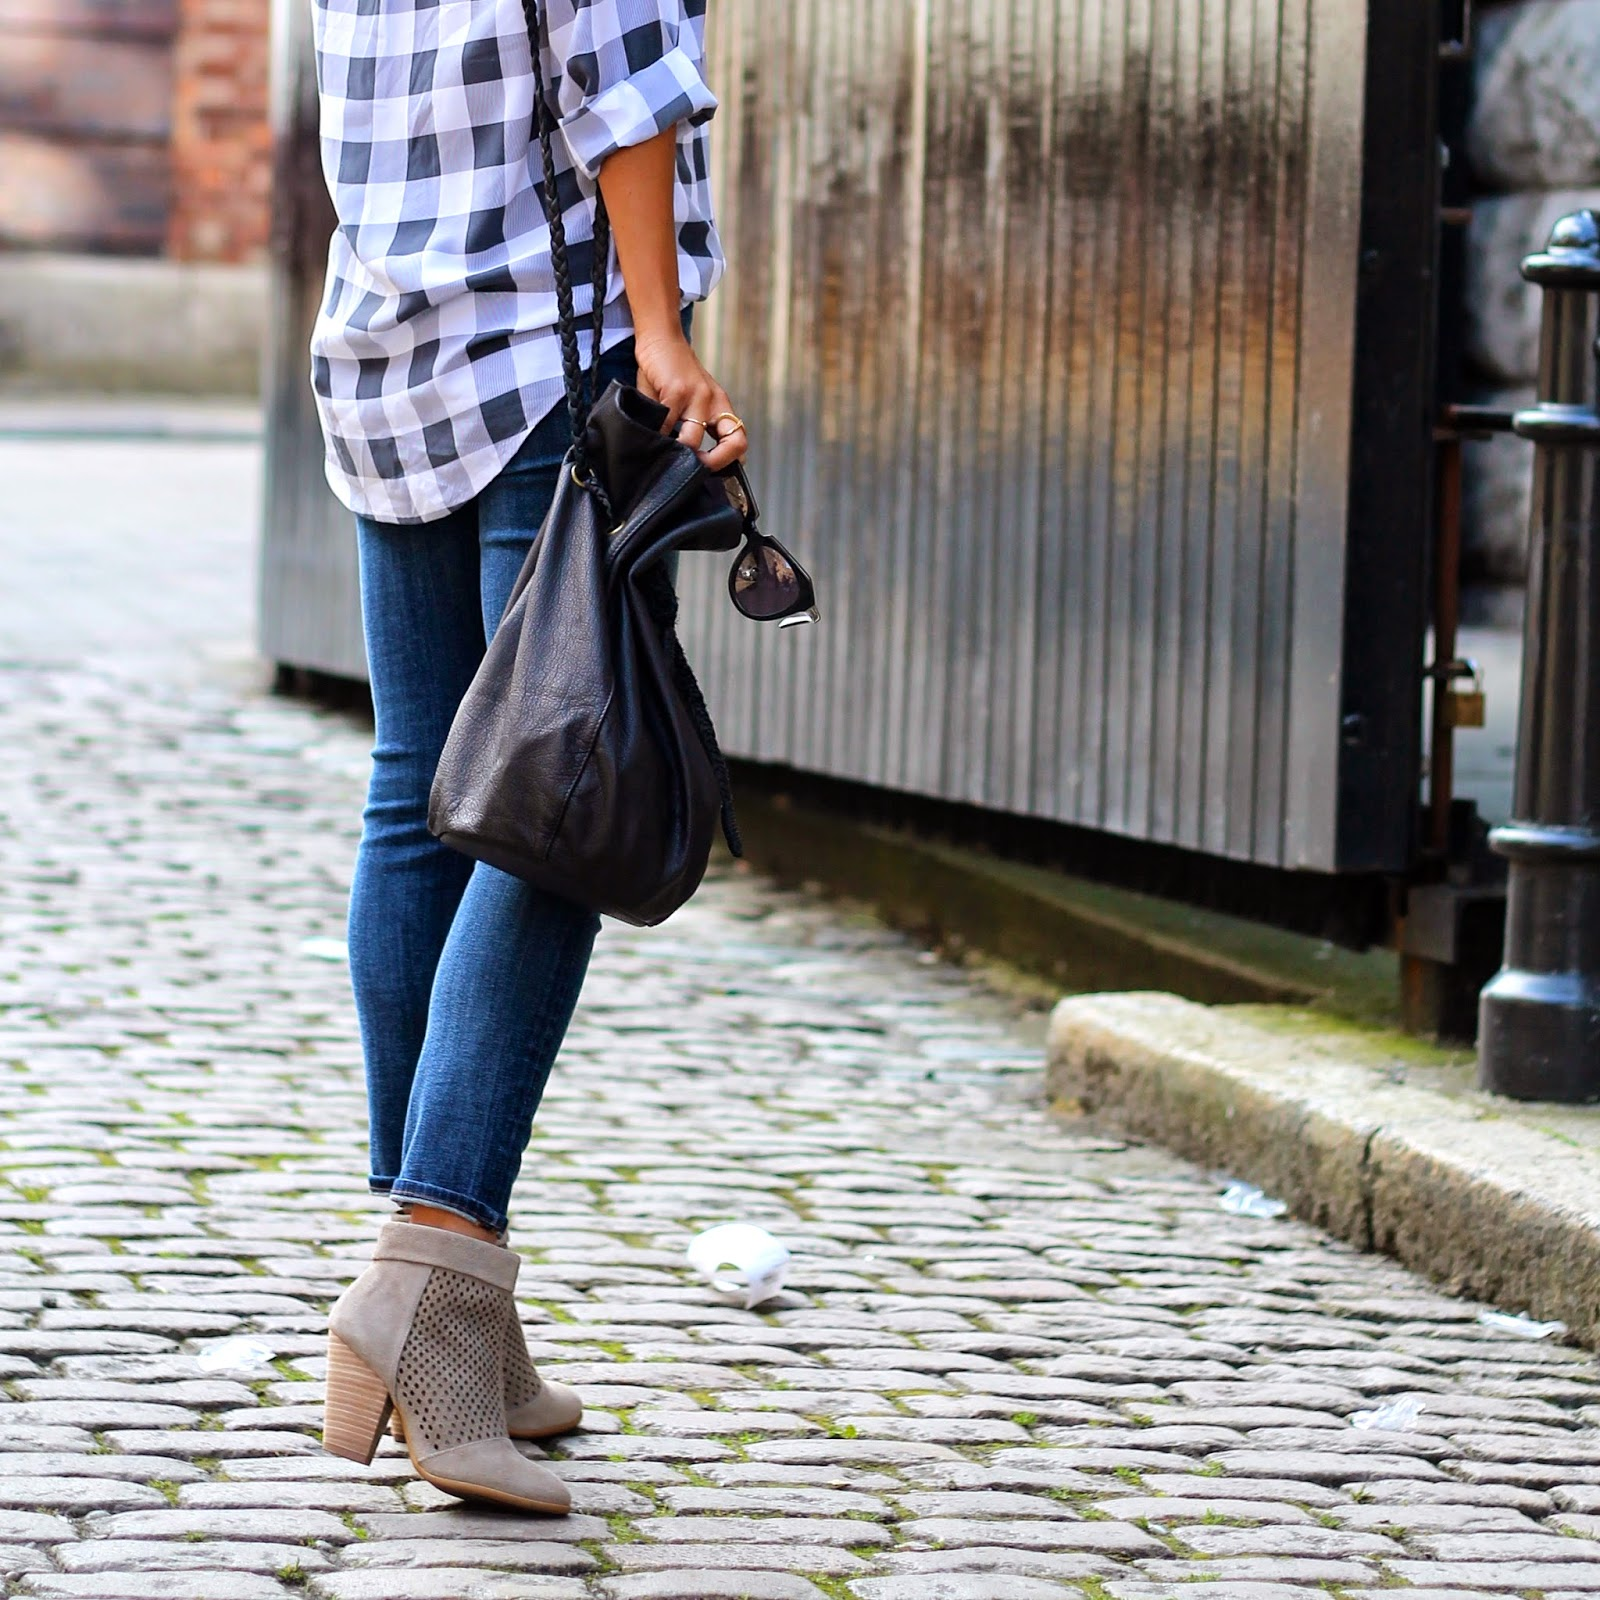 Ashley Torres is wearing jeans from J. Brand, gingham shirt from Equipment and boots and bag from Sole Society